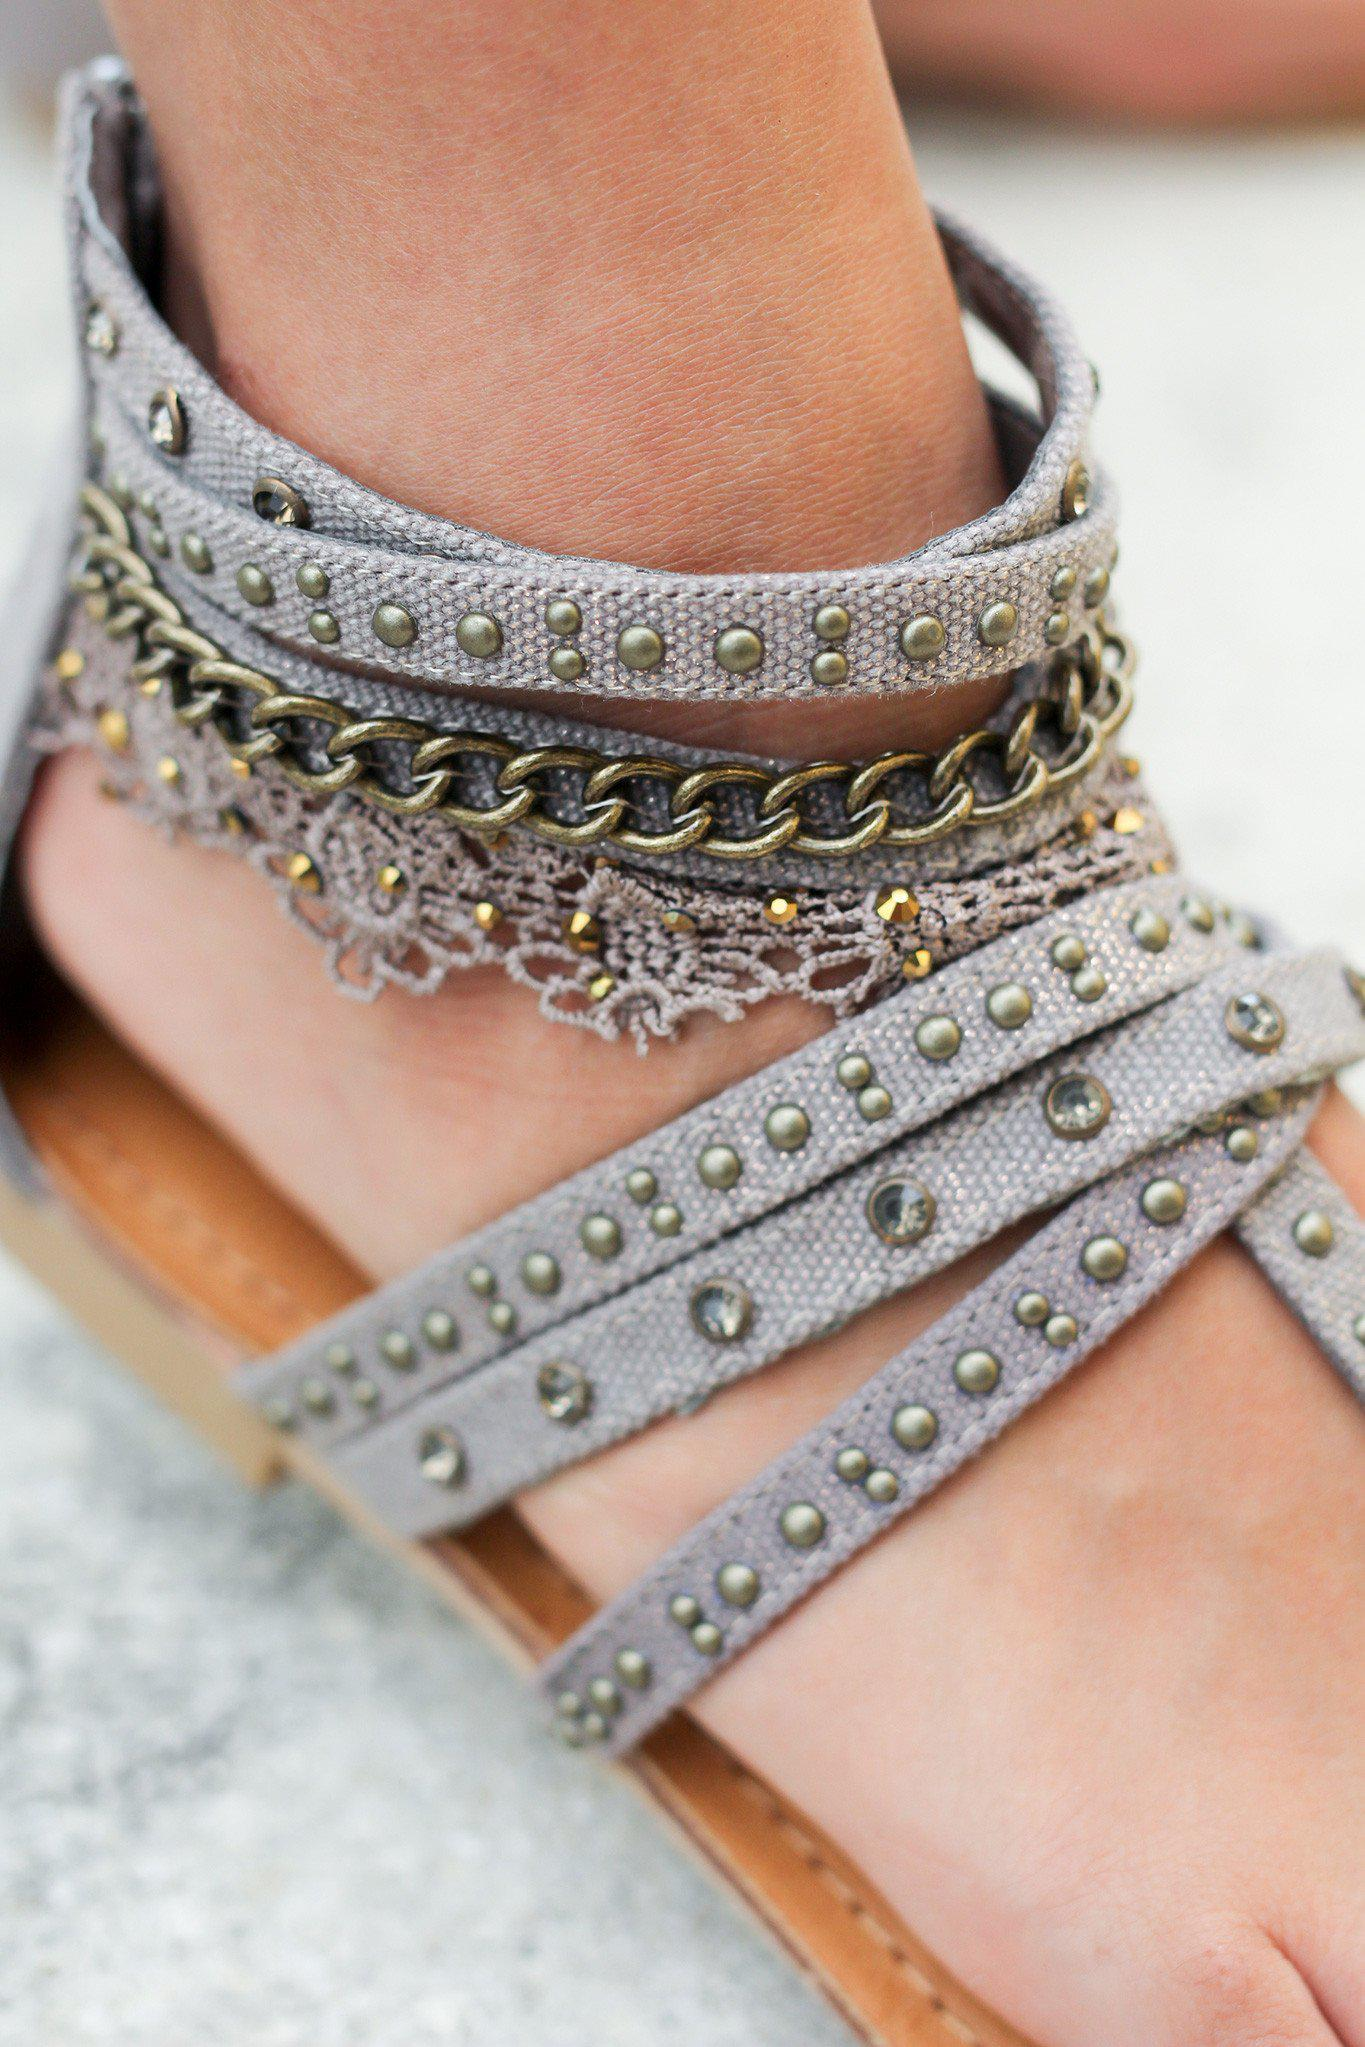 Wilma Taupe Sandals | Online Boutiques – Saved by the Dress